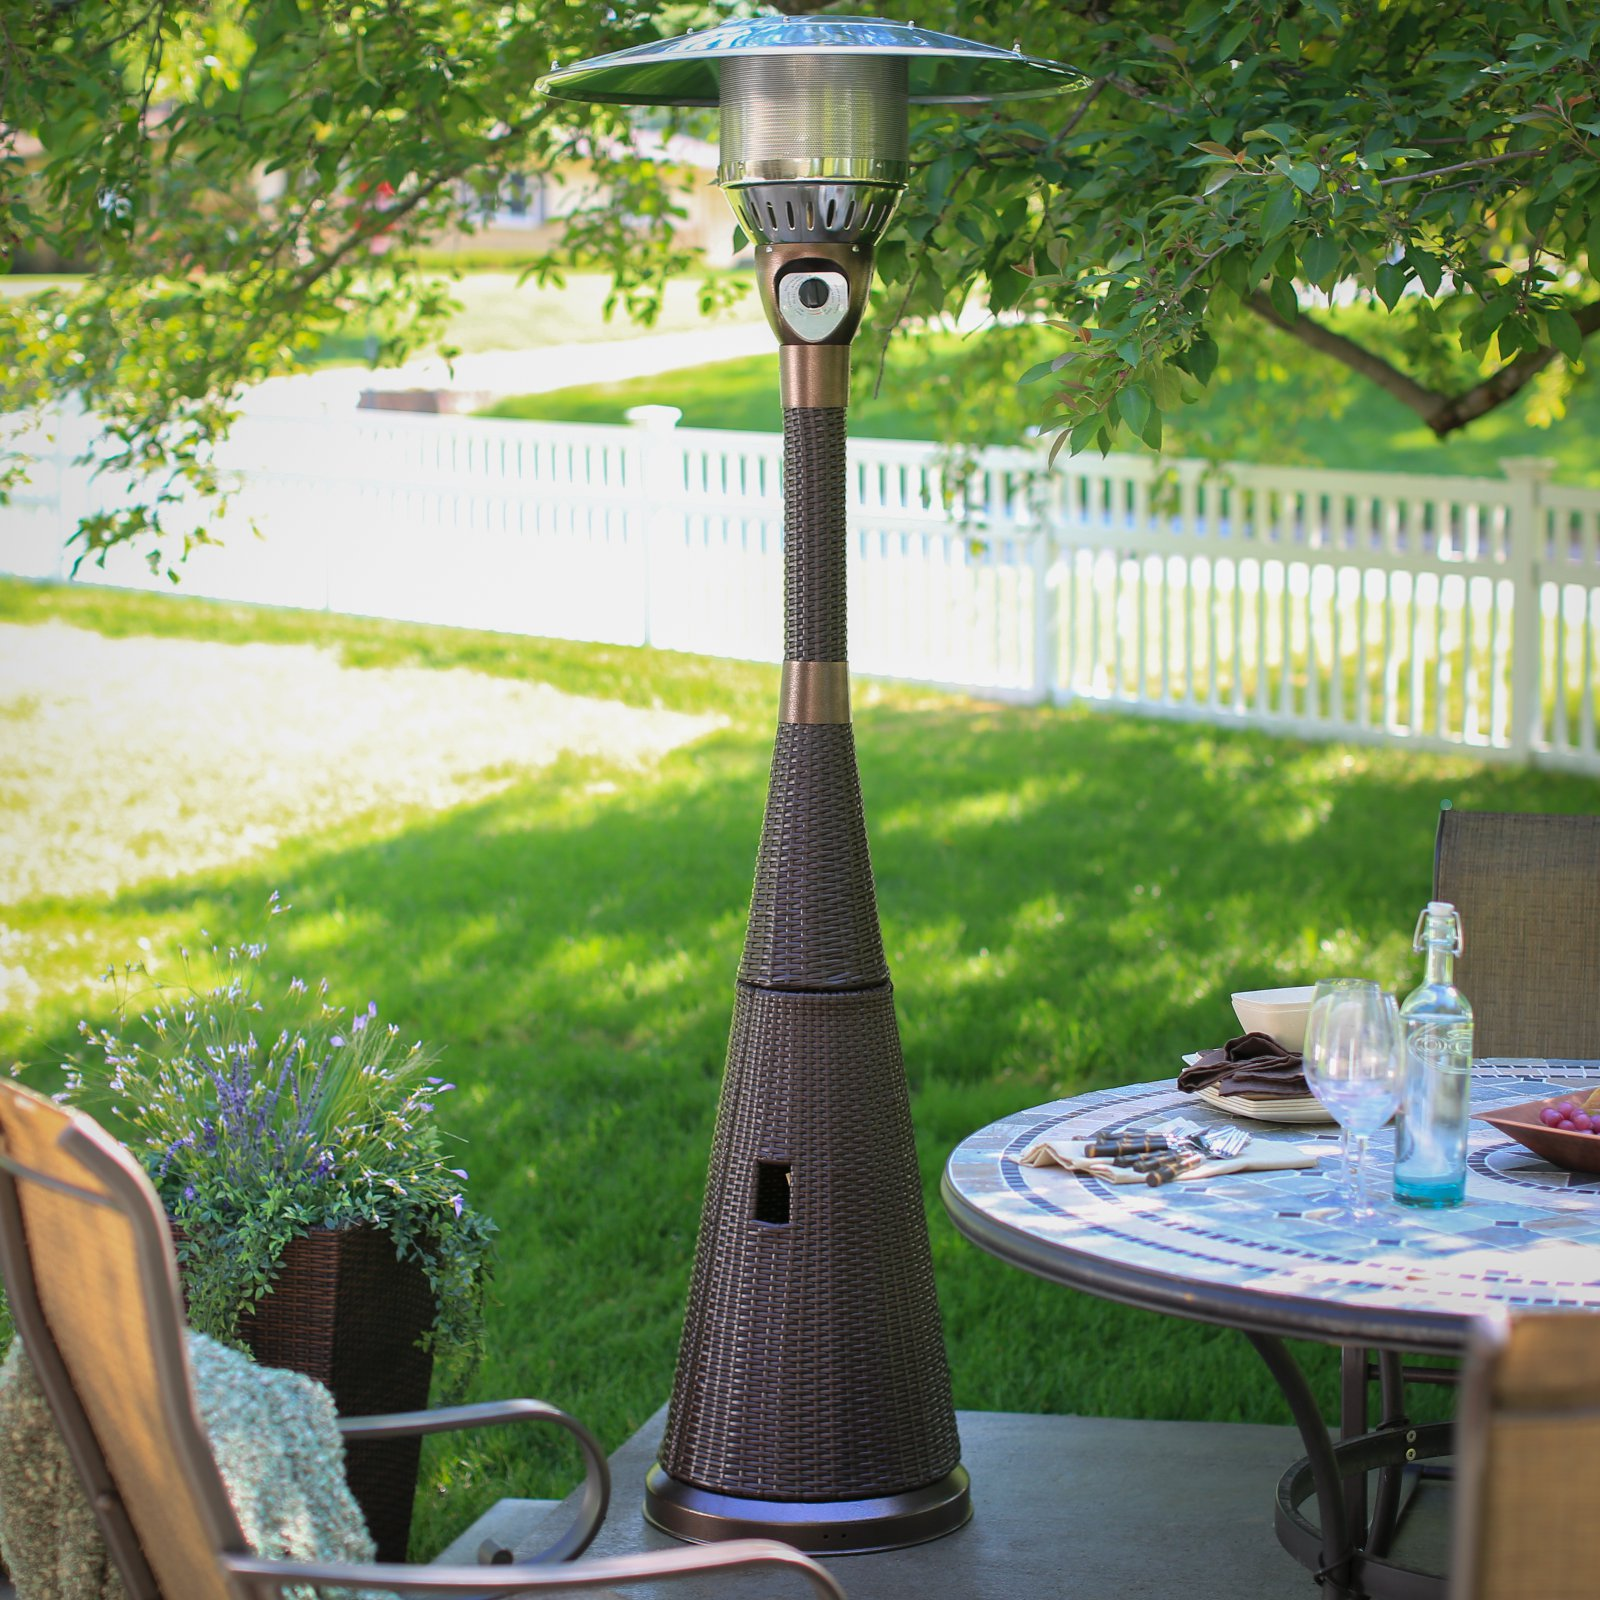 AZ Patio Heater Hiland Mocha Wicker Propane Patio Heater by AZ Patio Heaters